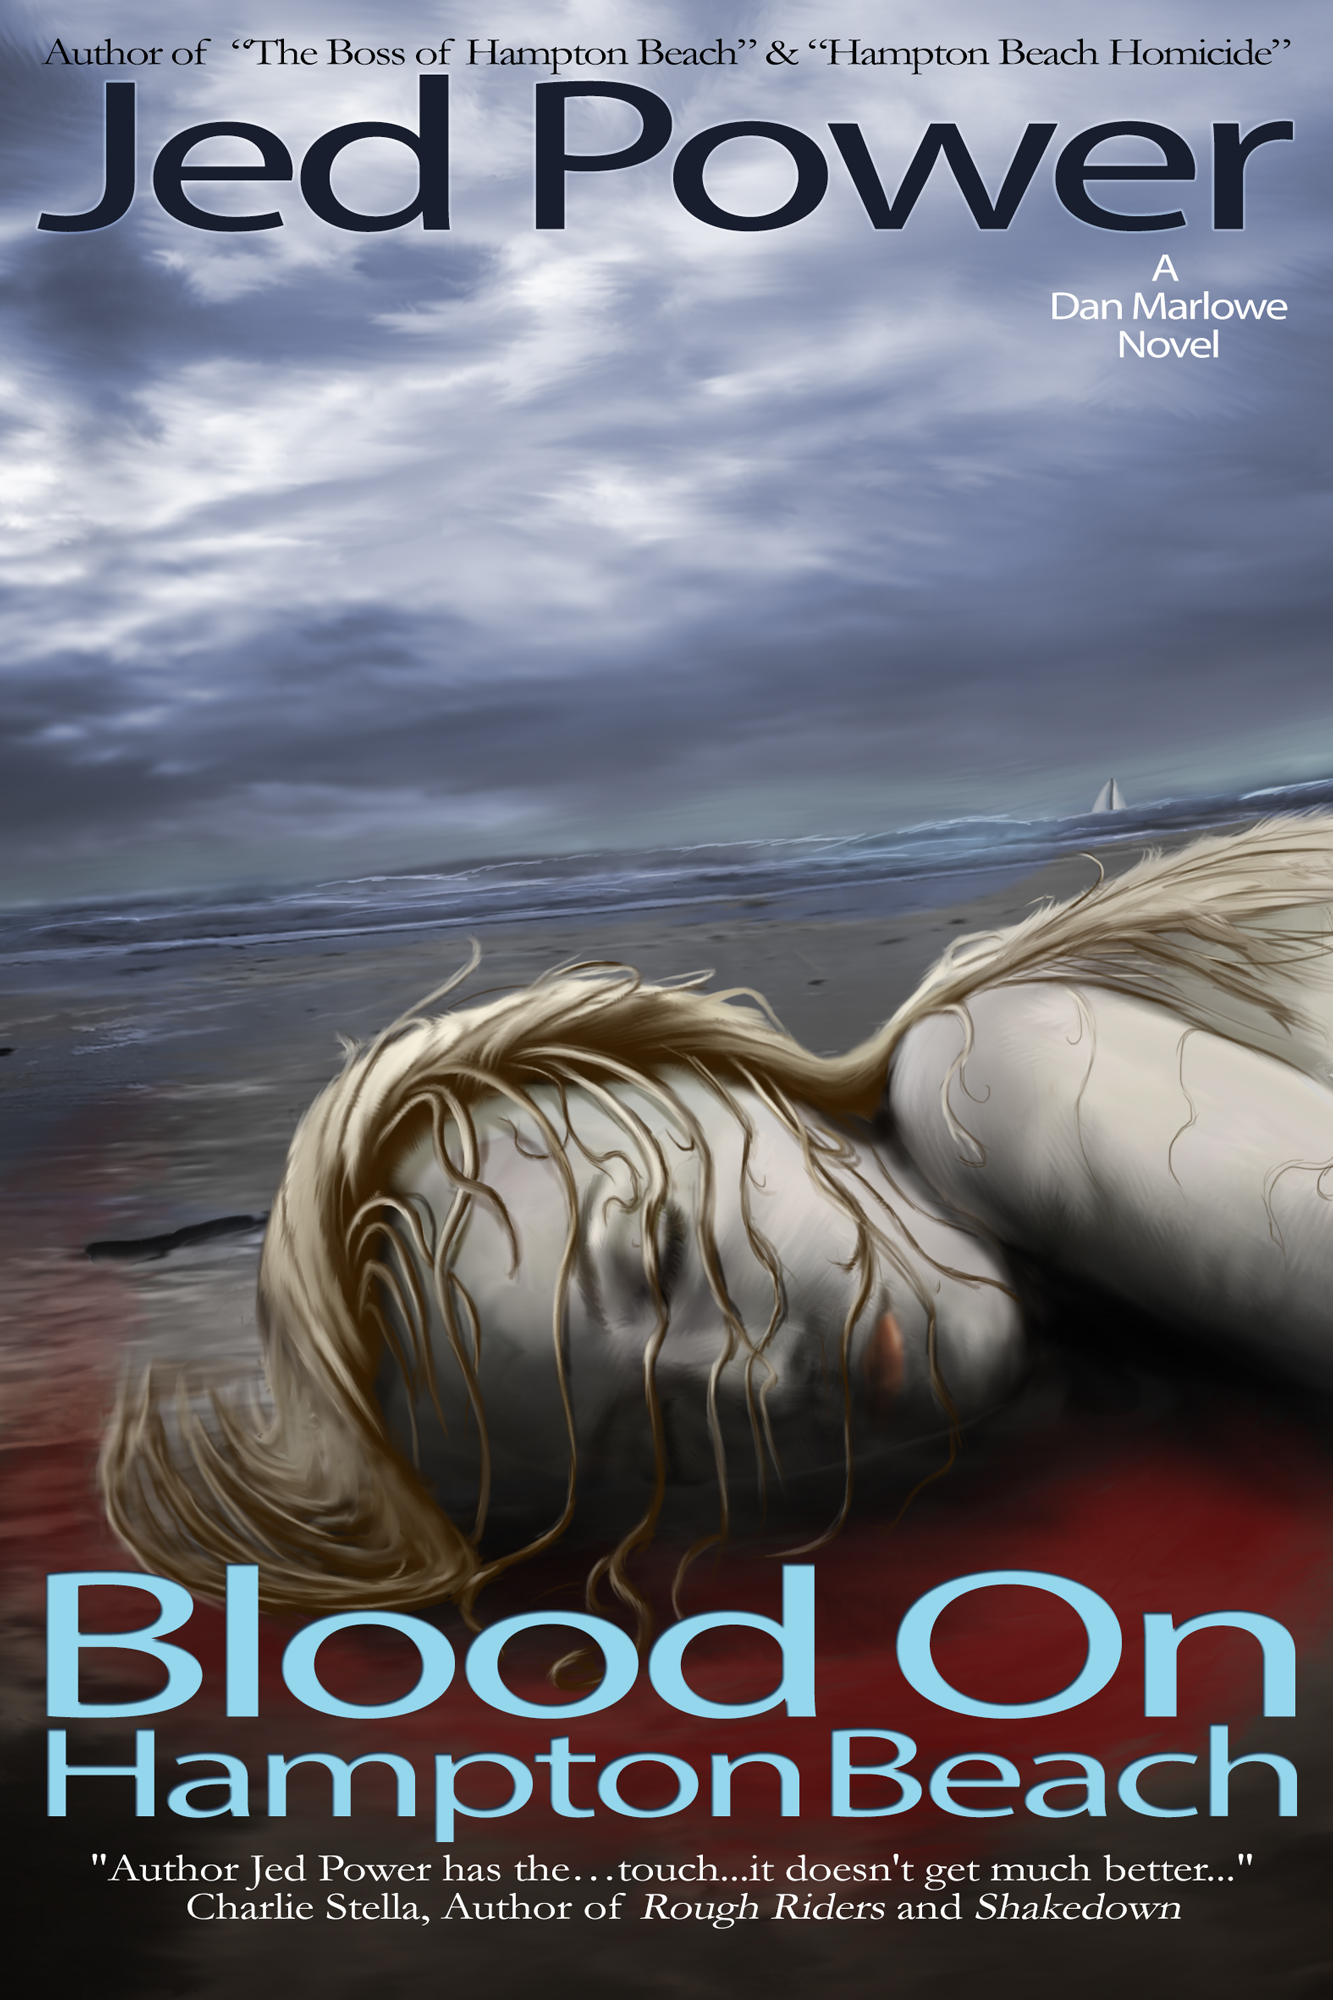 Blood on Hampton Beach: A Dan Marlowe Novel (Book 3)